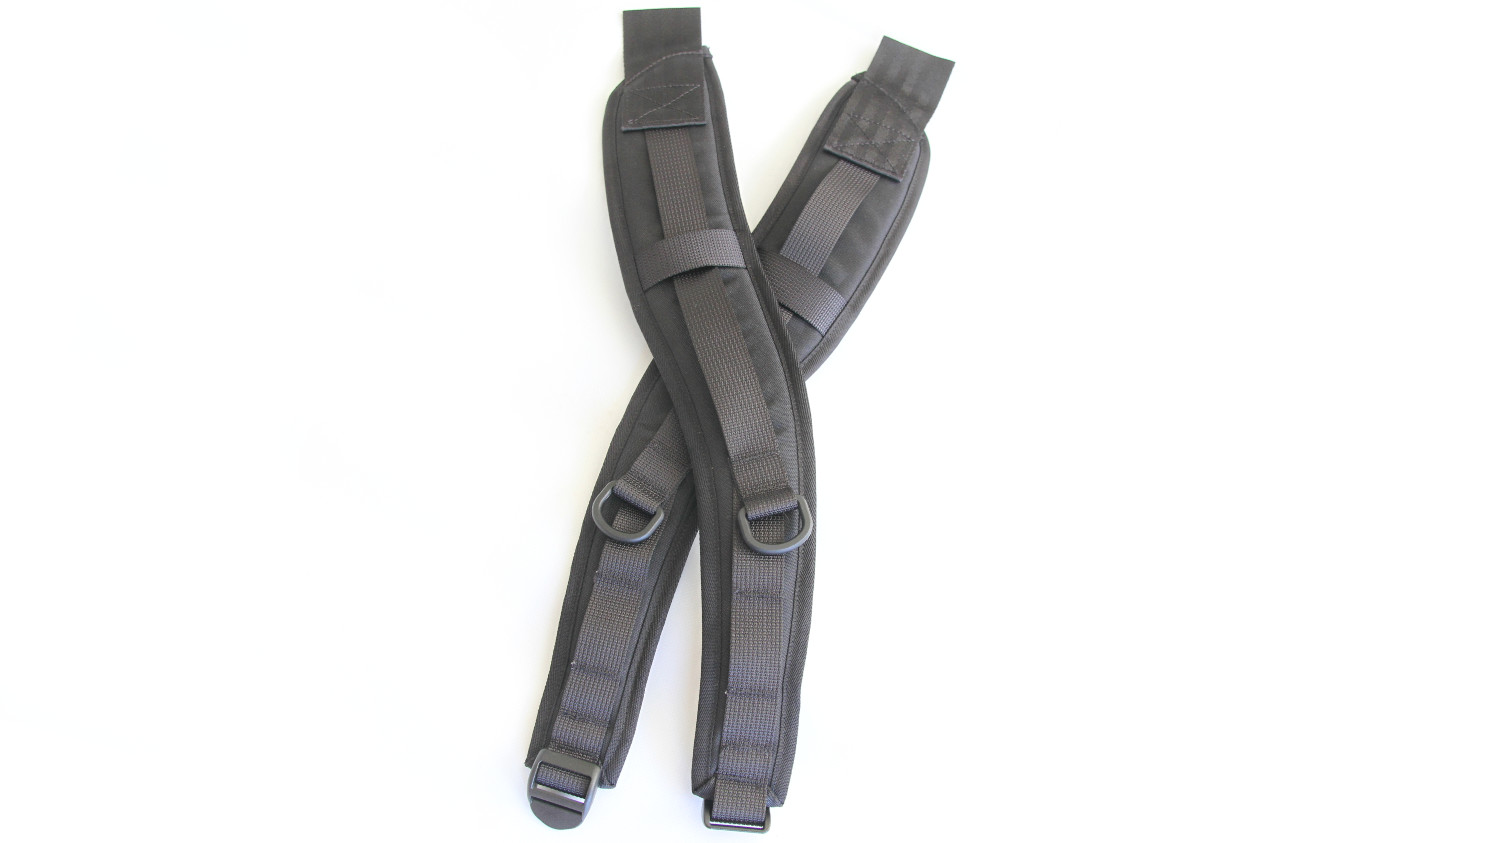 Professionally finished backpack shoulder straps for your DIY project